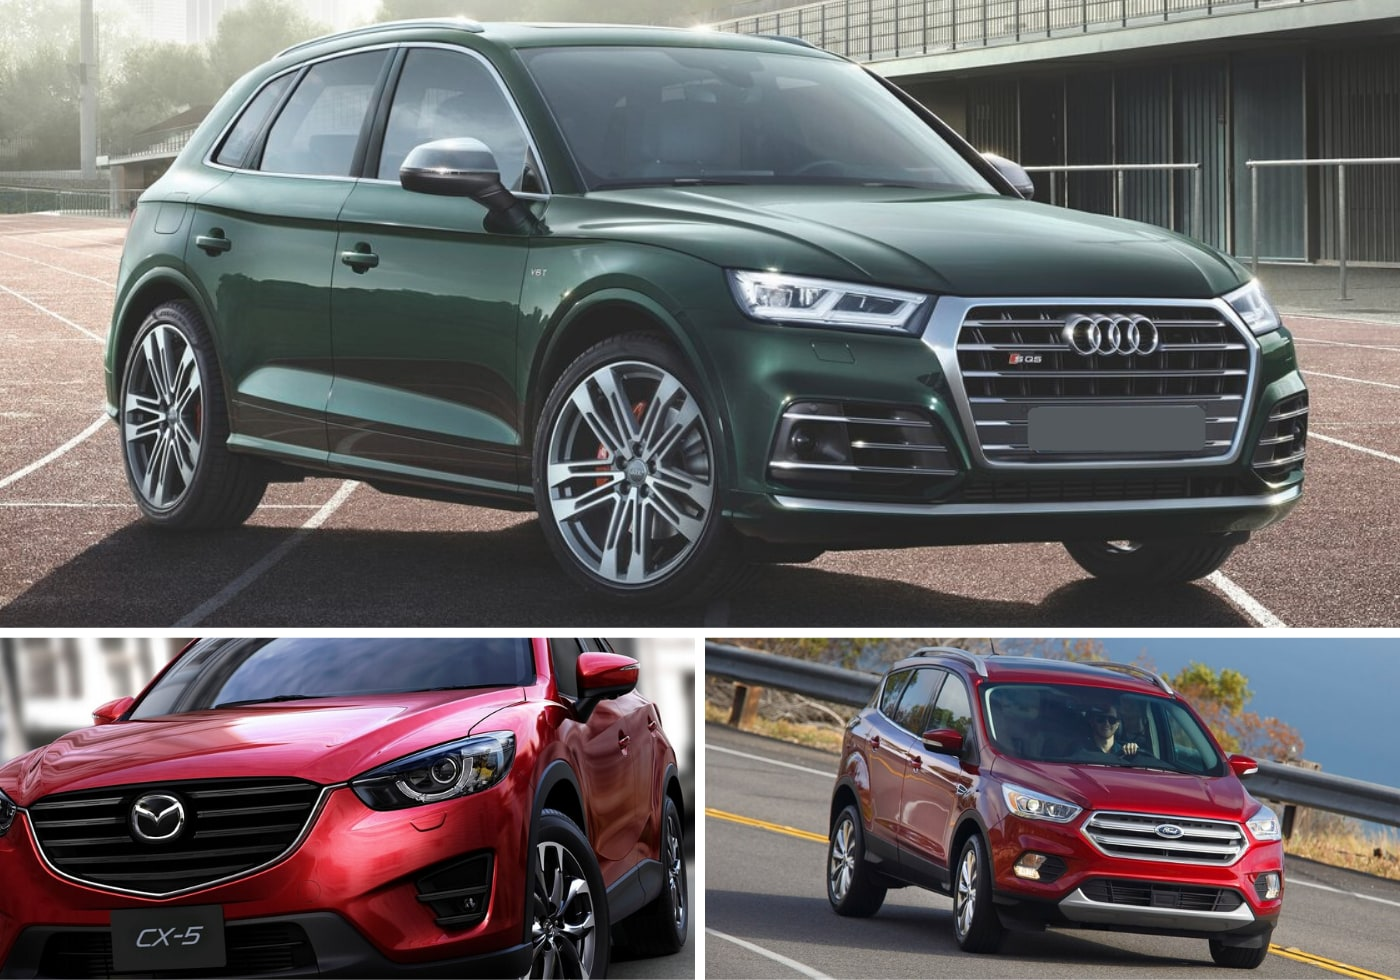 3 image collage of a used 2018 Audi Q5, 2016 Mazda CX-5, and 2017 Ford Escape ranked among the best AWD SUVs